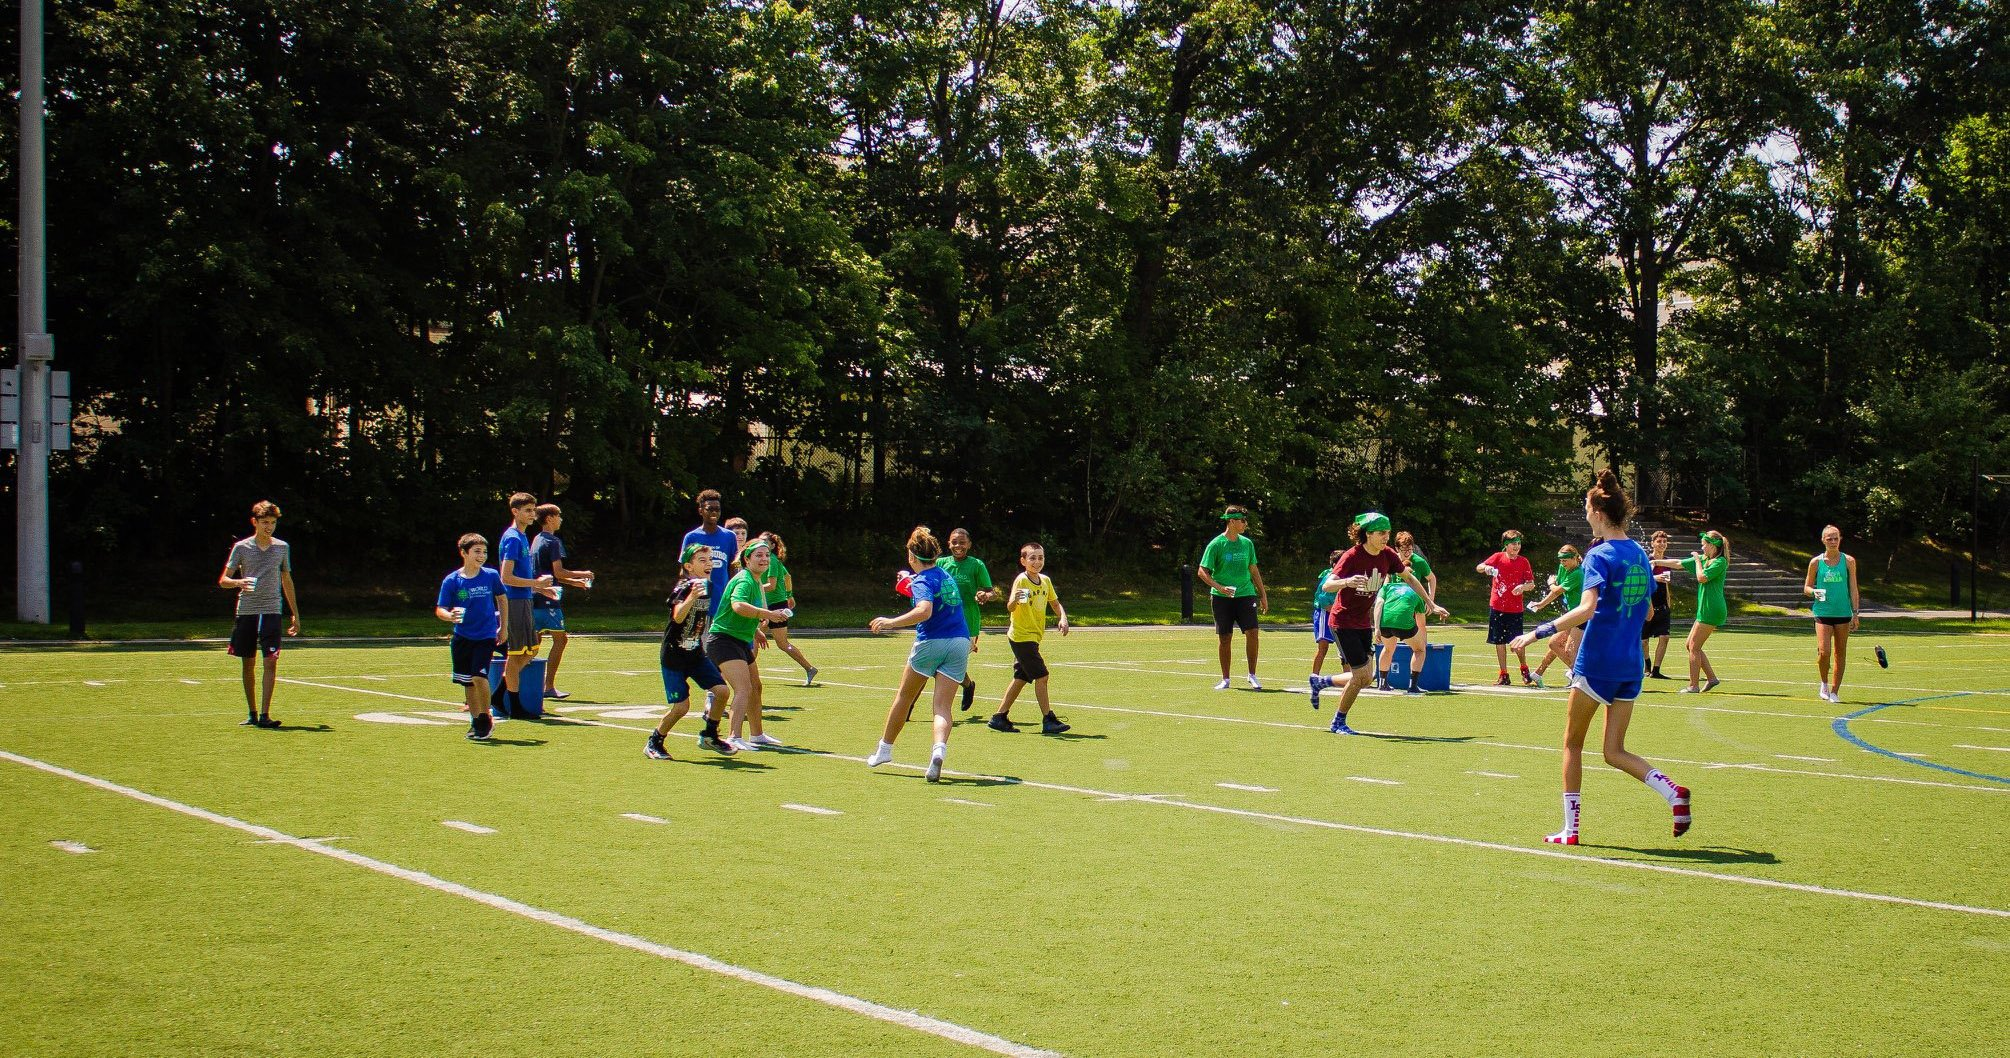 Boston sports Camp